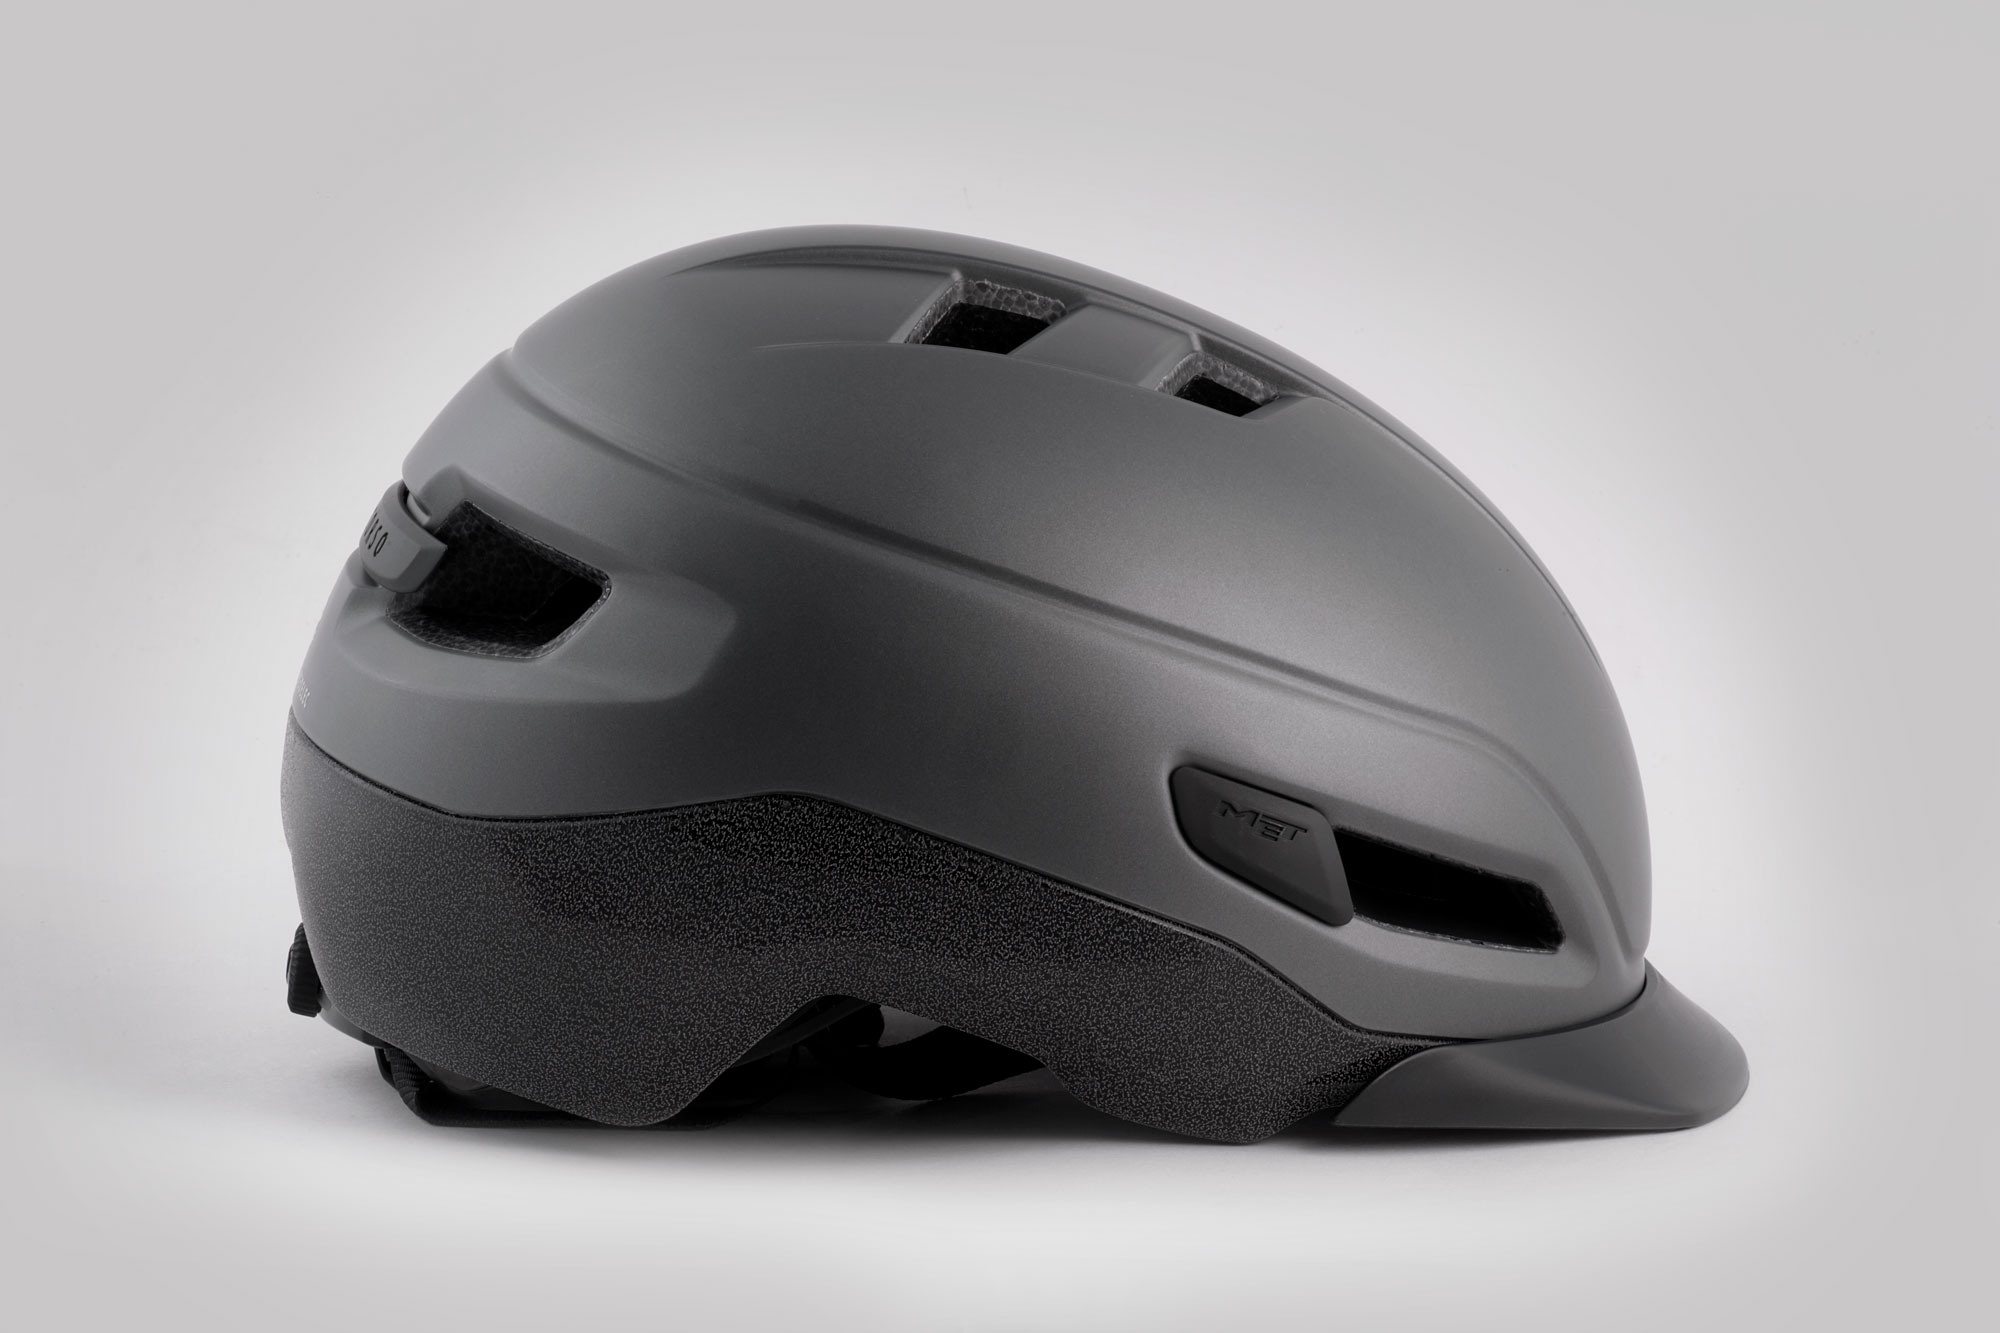 Met Launches New Grancorso Ebike Helmet In Line With New Ebike